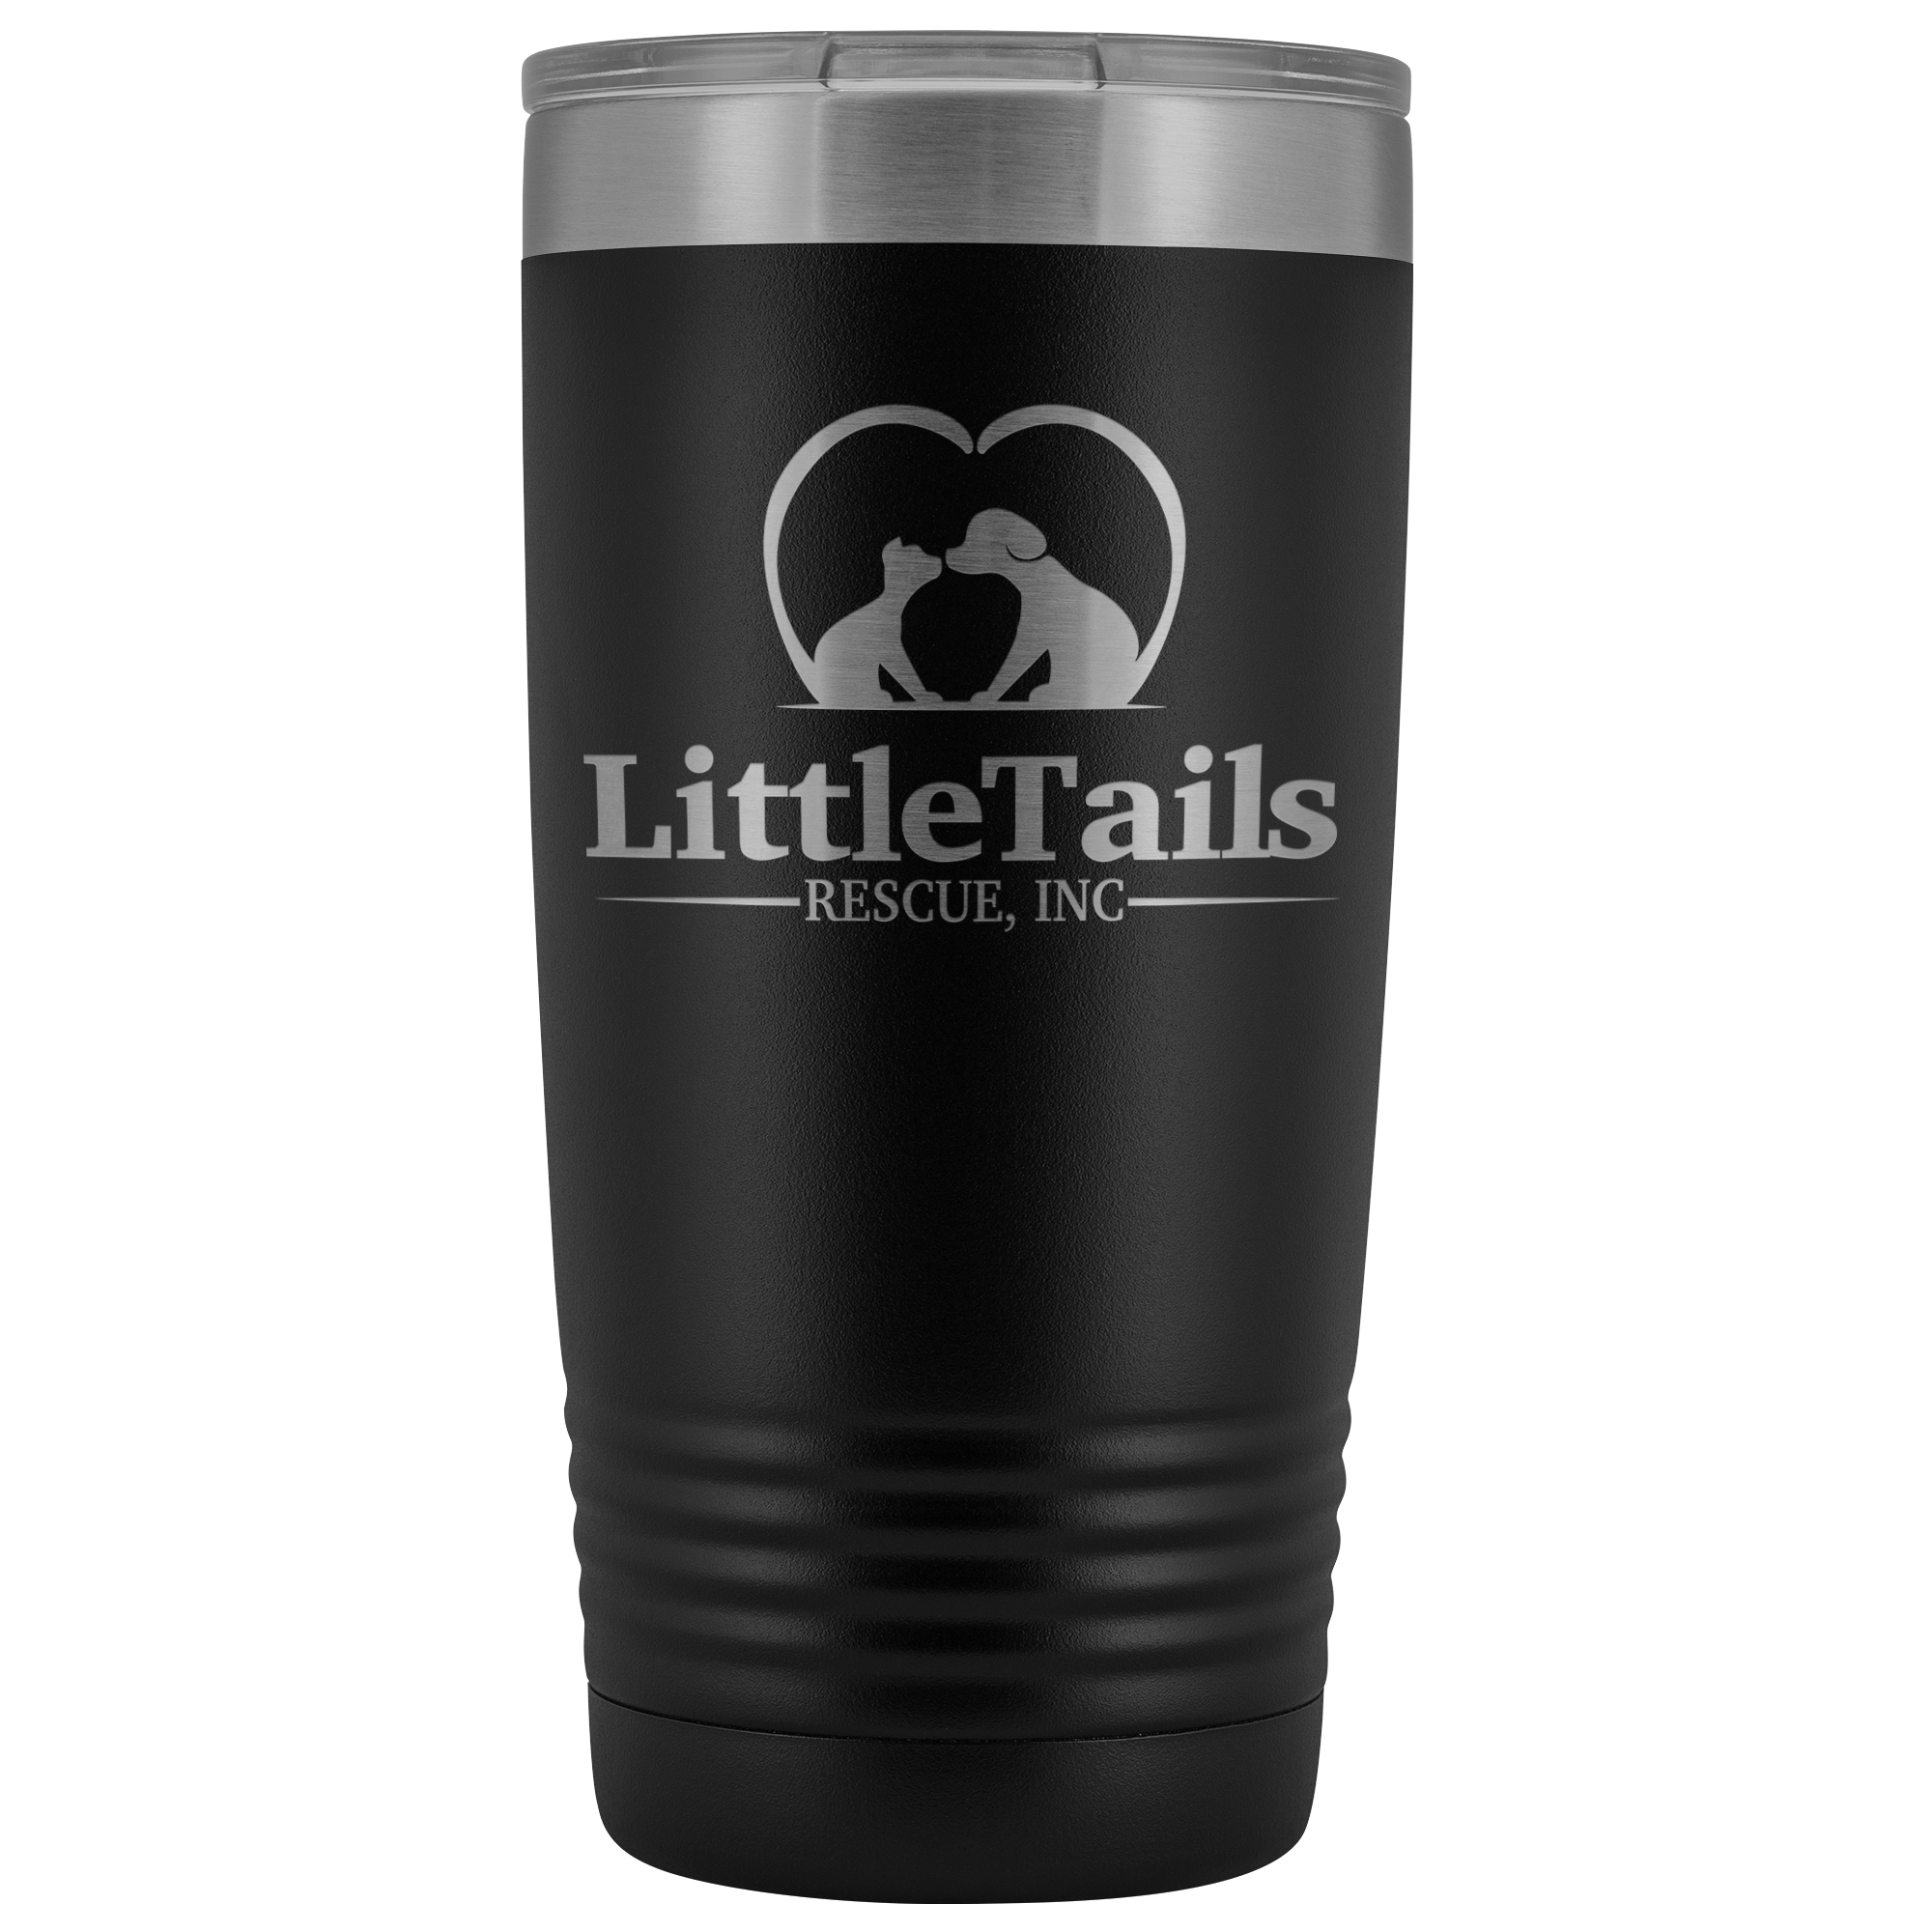 Little Tails Rescue, Inc - 20 oz. Tumbler